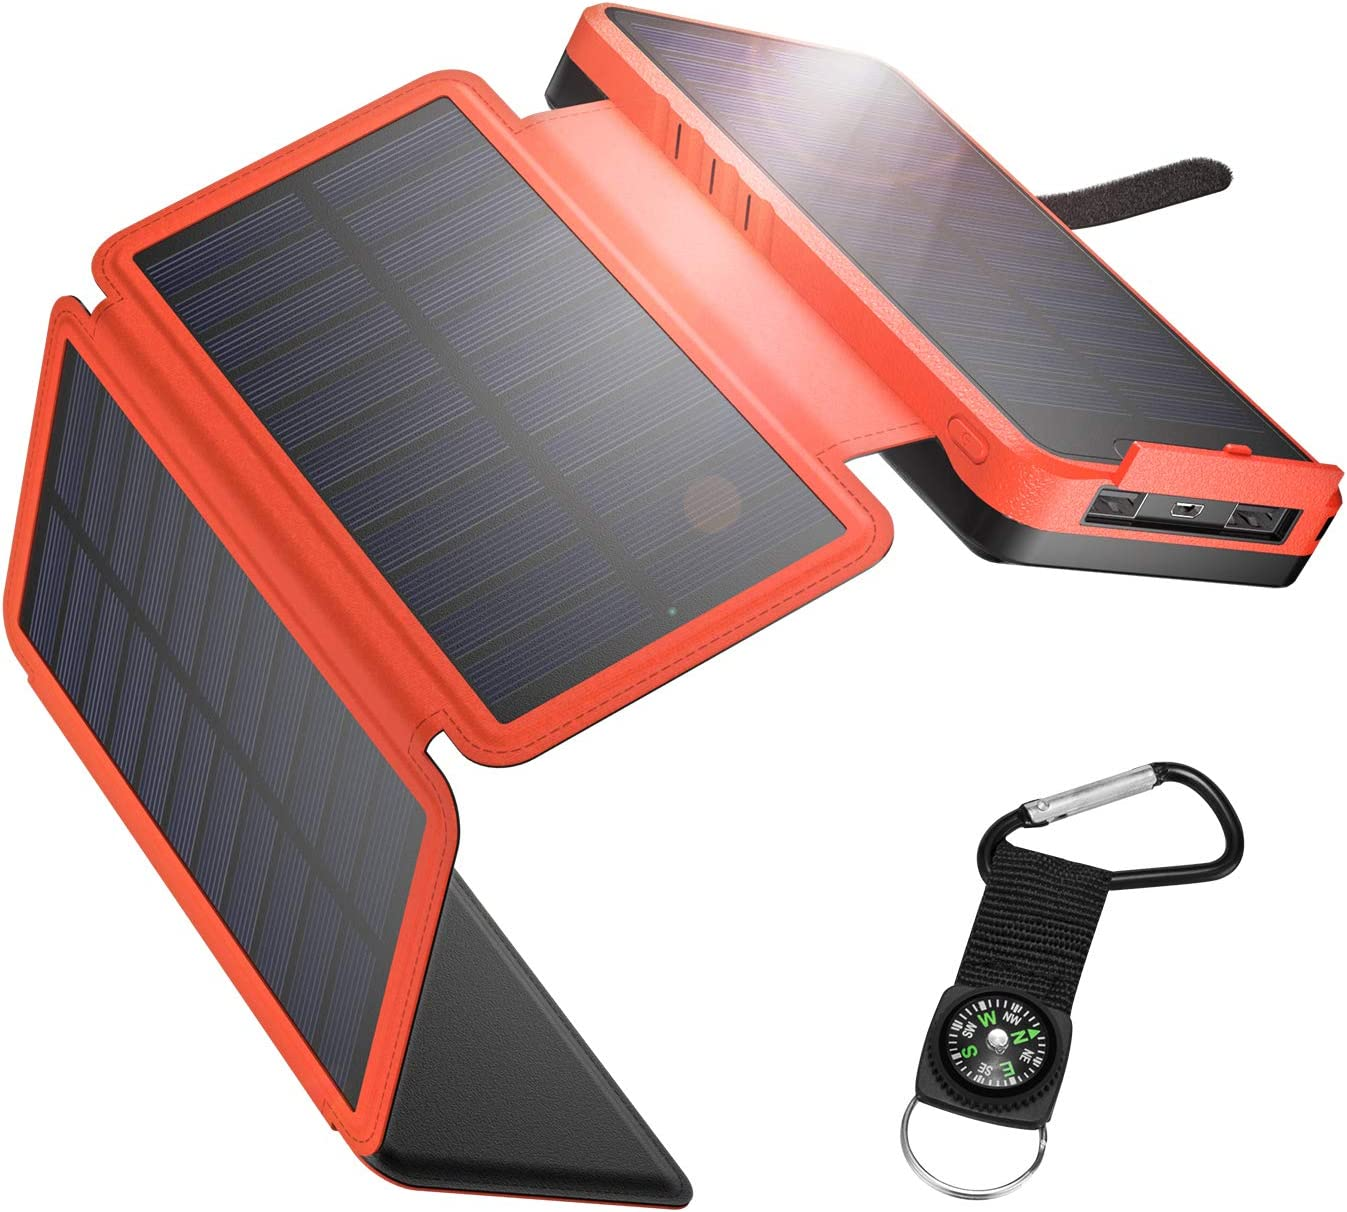 IEsafy Solar Charger